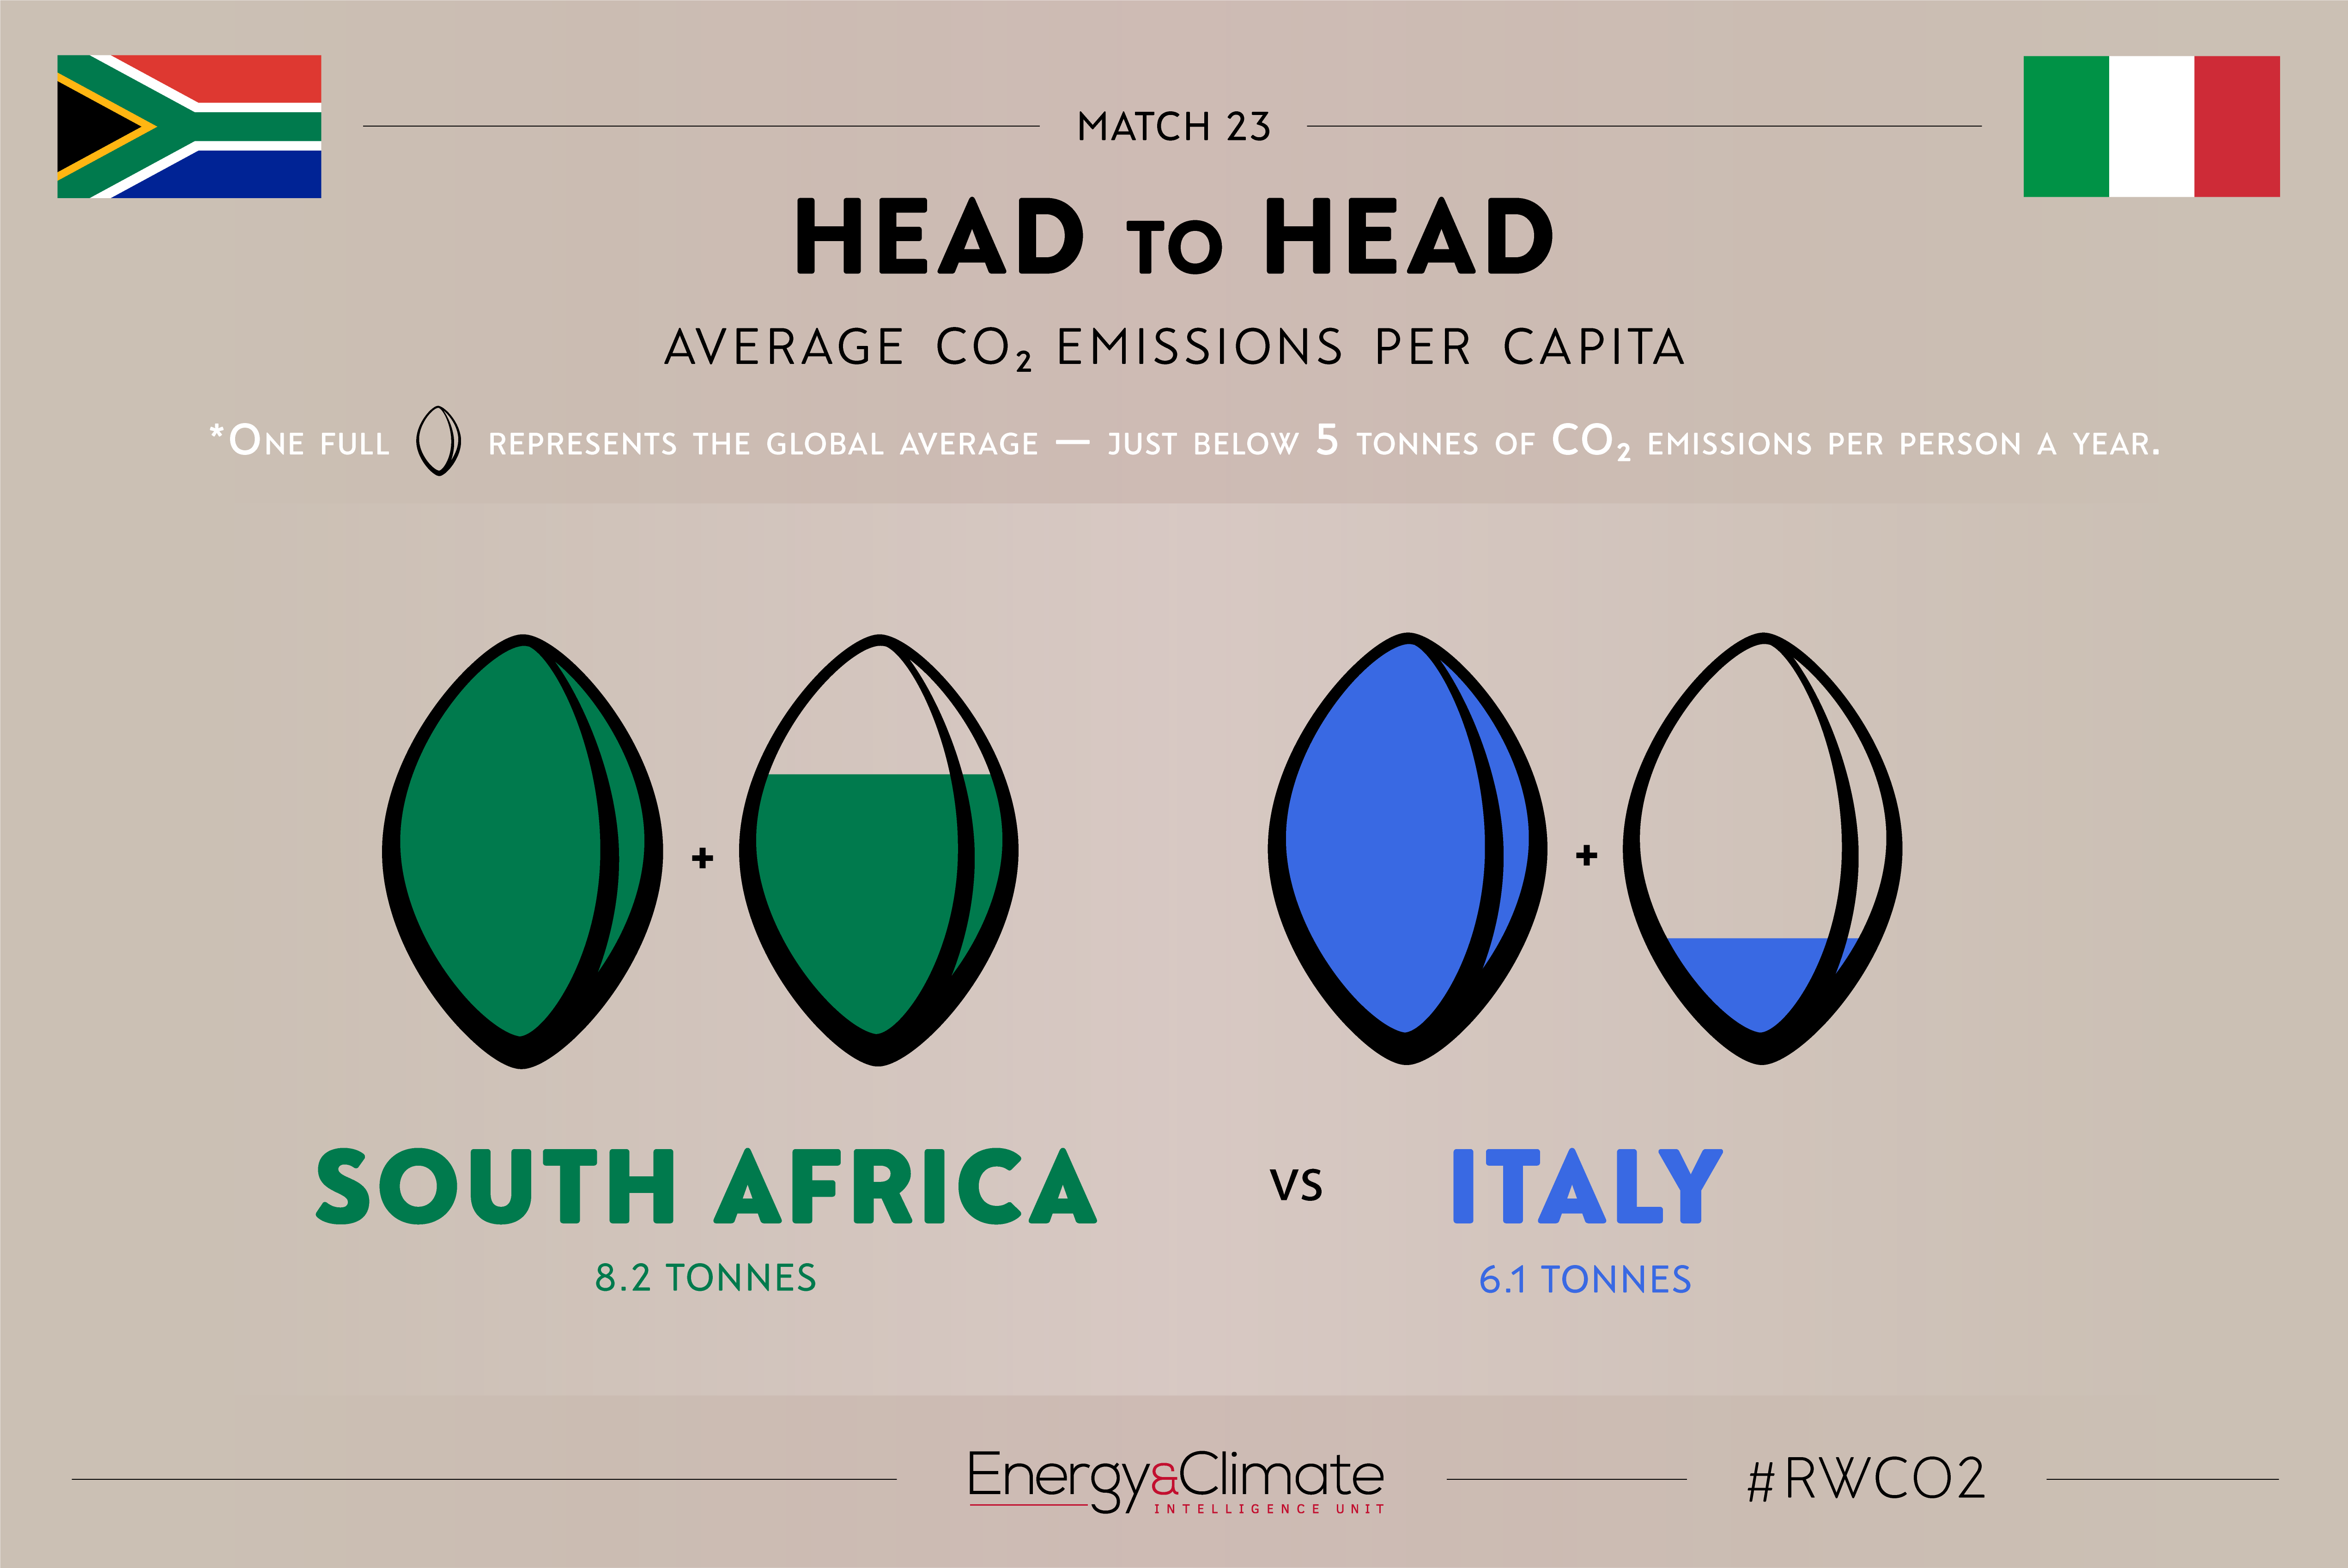 South Africa v Italy per capita emissions